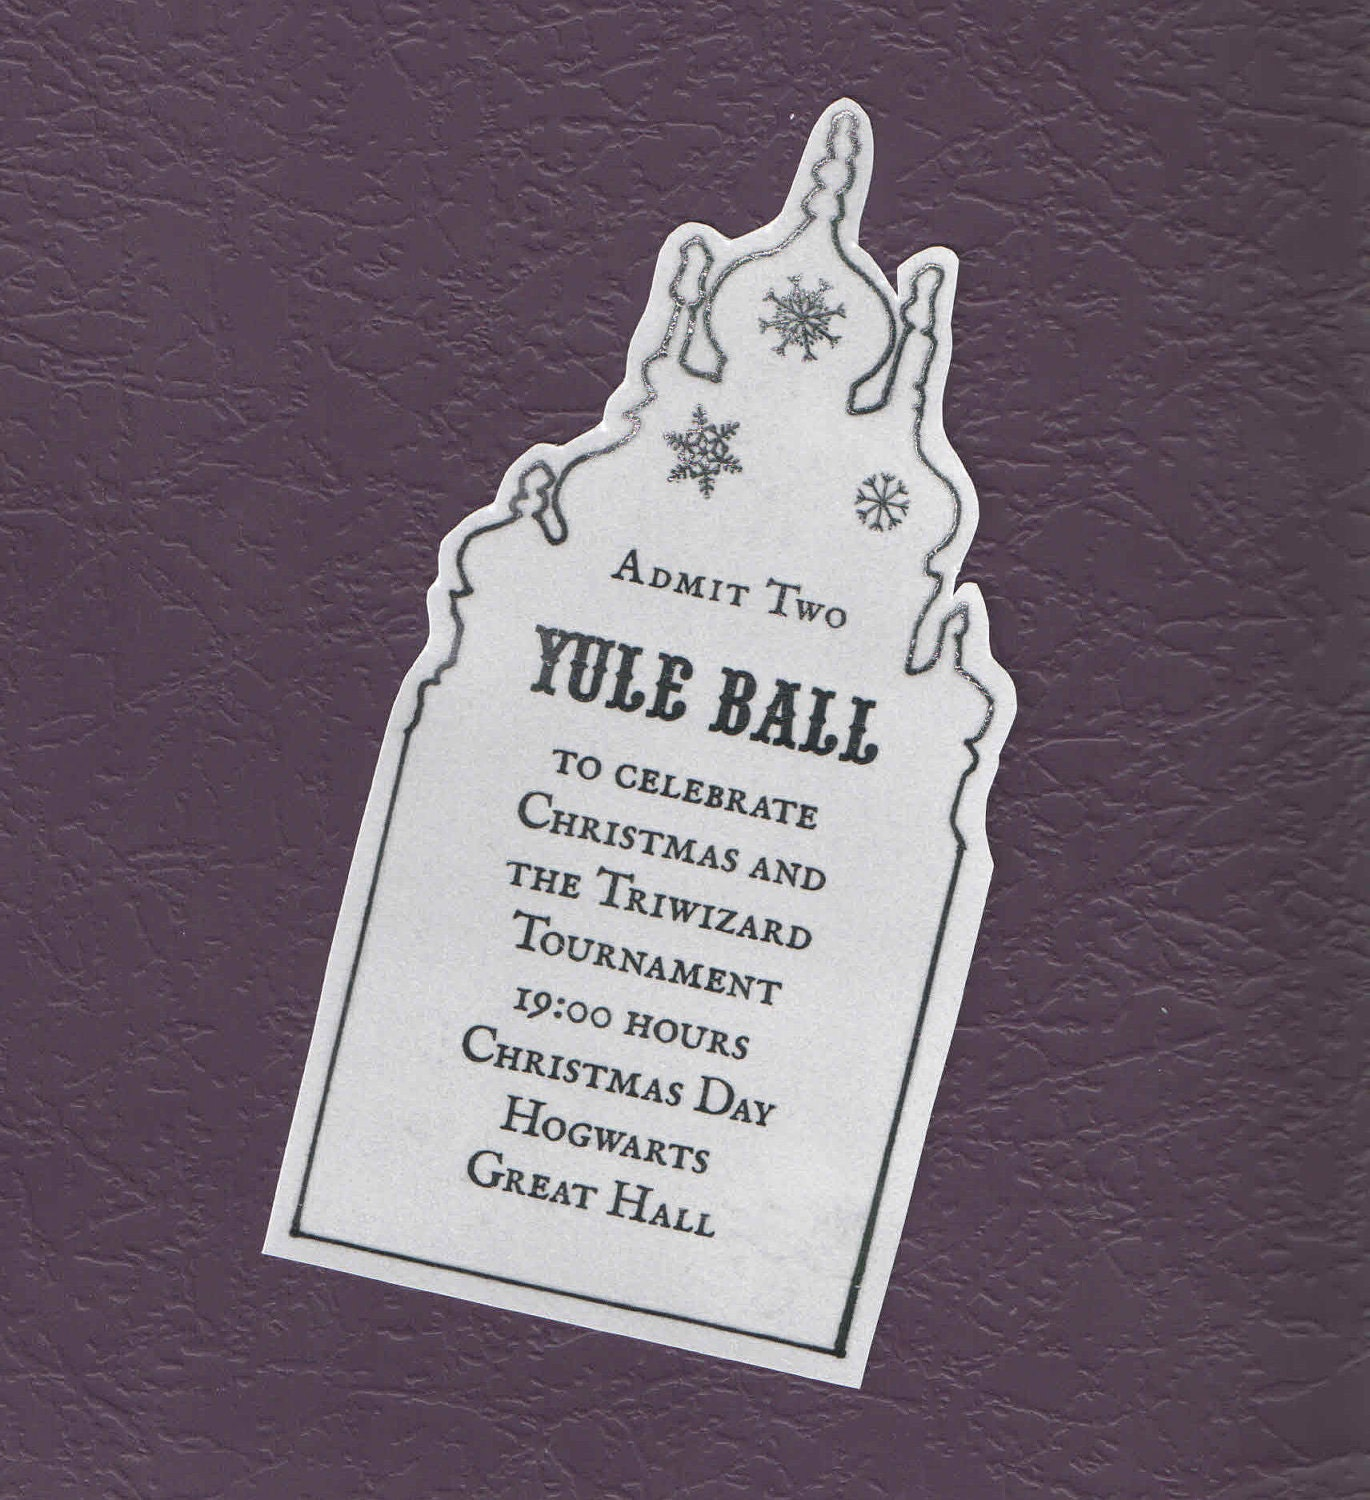 yule ball ticket replica prop witch or wizard. Black Bedroom Furniture Sets. Home Design Ideas